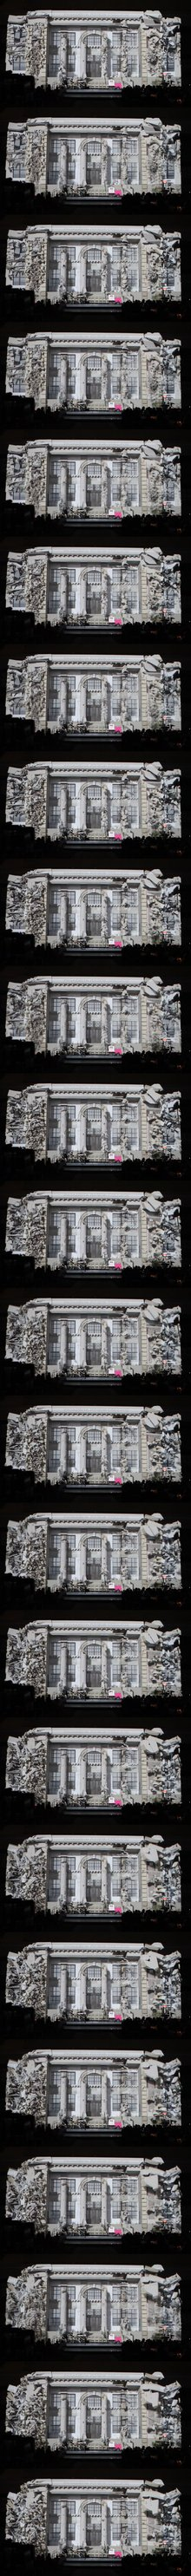 These beautiful projection maps bring to life some of the most iconic structures on the planet